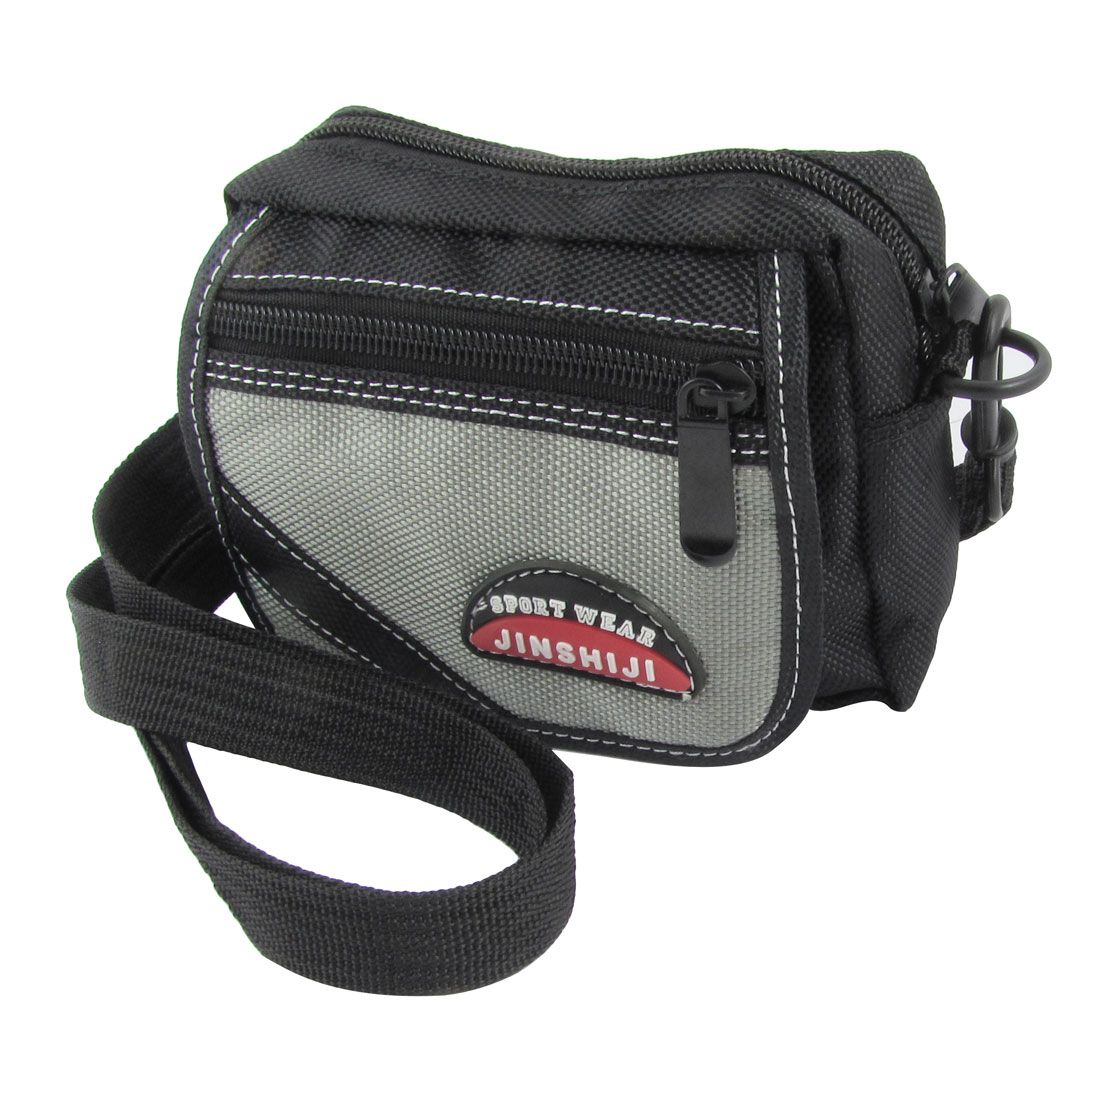 Man Black Gray Nylon 3 Pockets Adjustable Strap Waist Bag